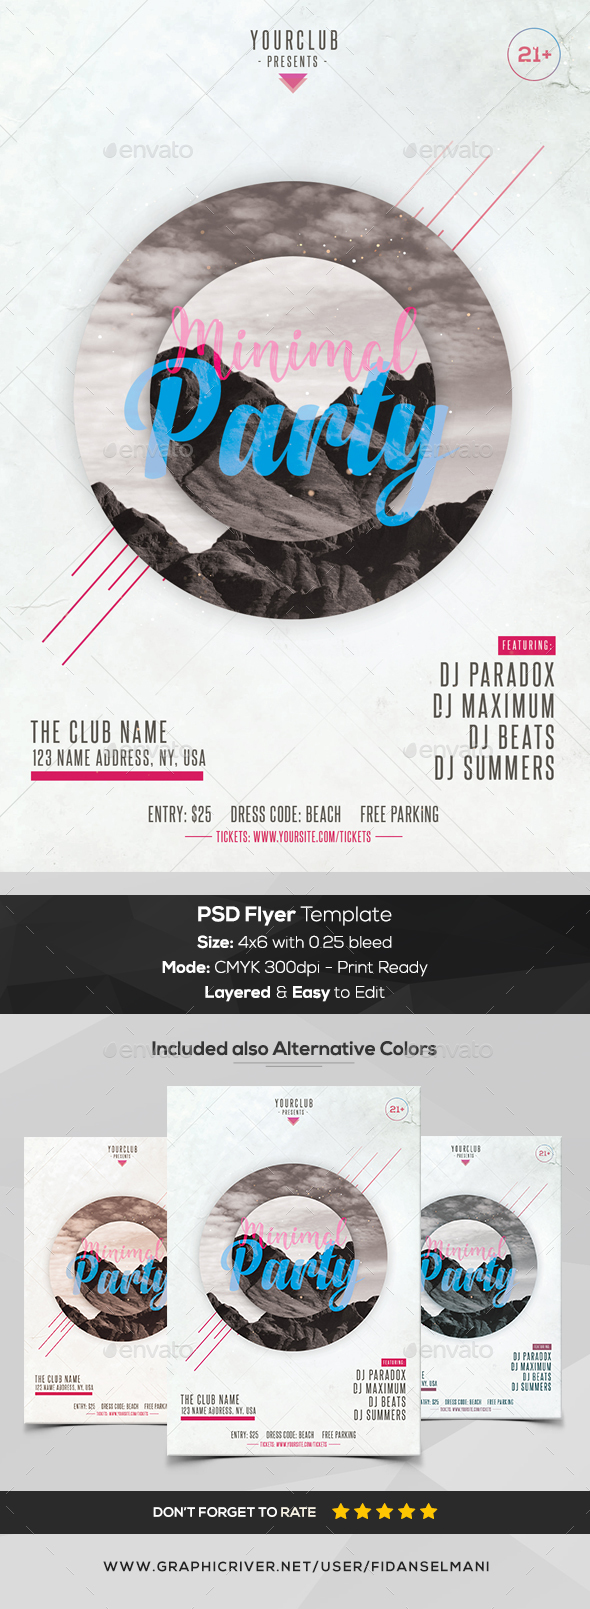 Minimal Party - PSD Flyer Template - Flyers Print Templates